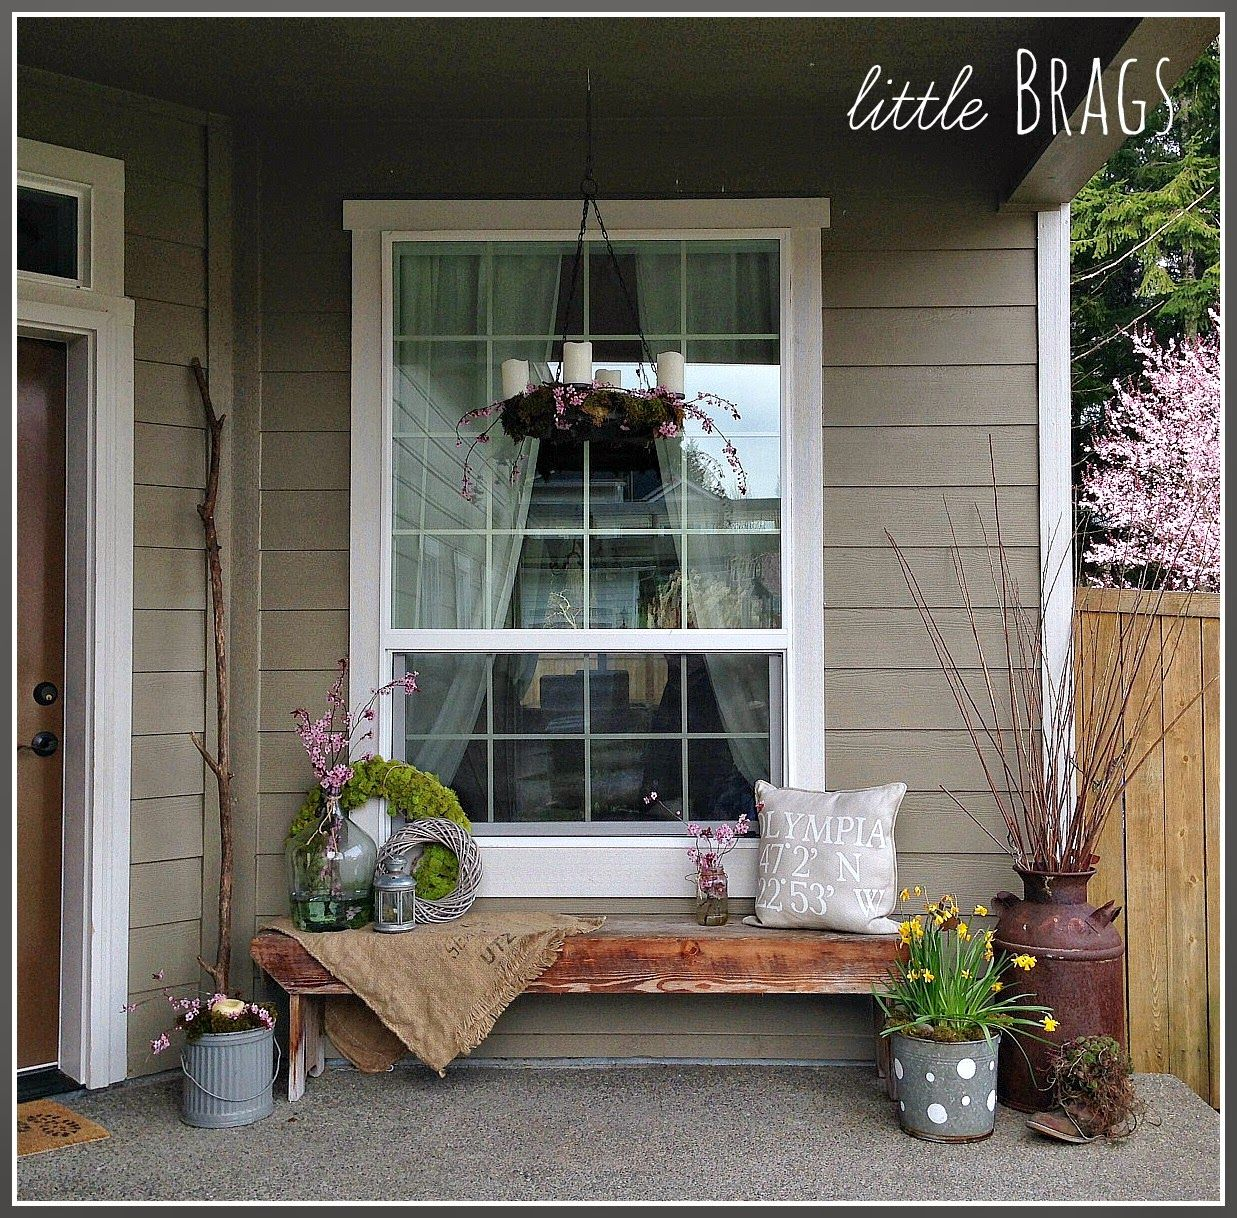 Porch Pictures For Design And Decorating Ideas: Little Brags: An Early Spring Porch